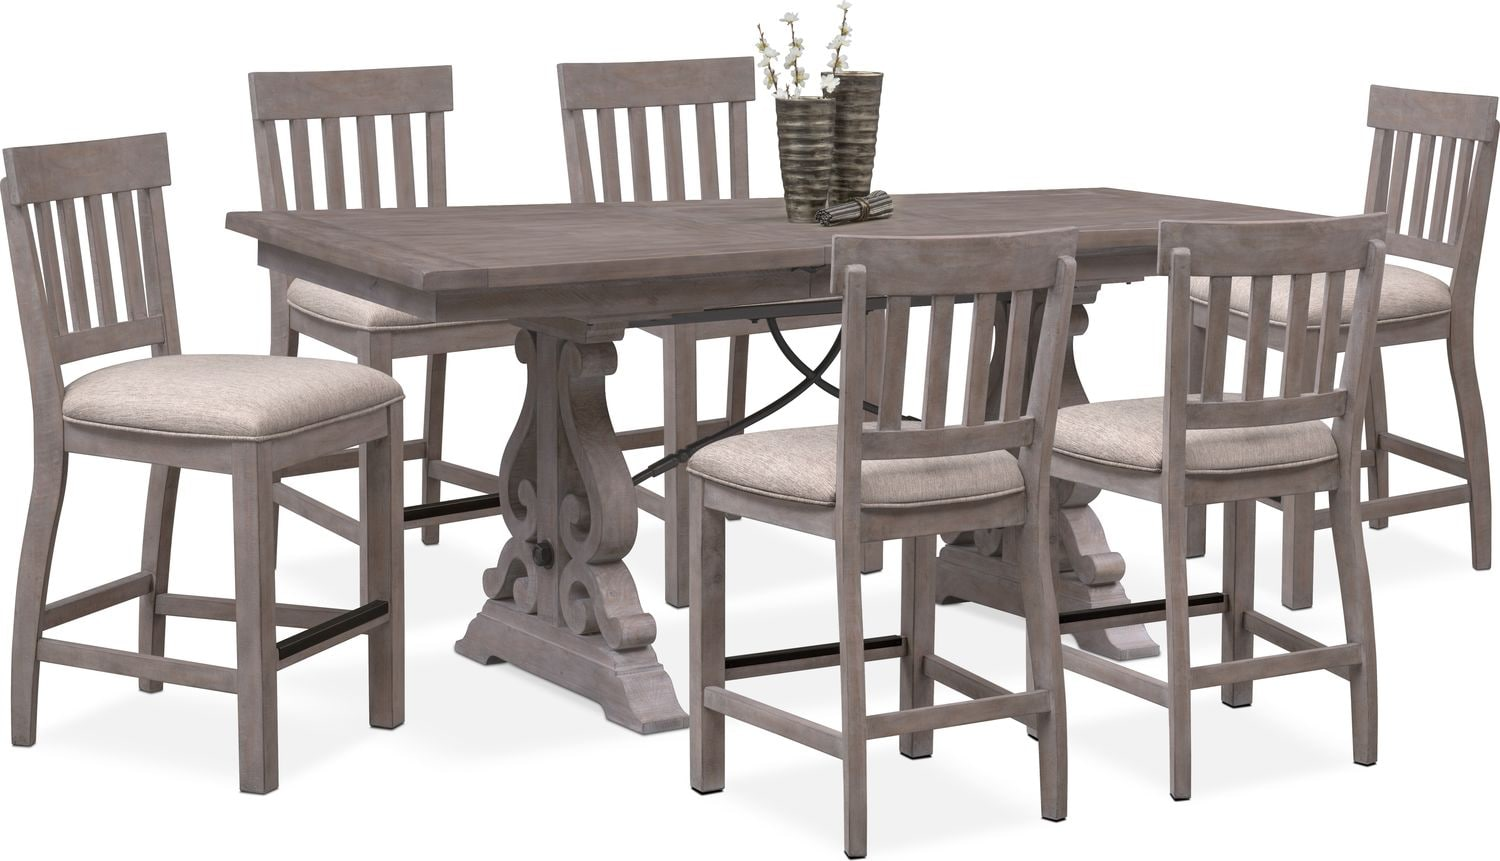 Dining Room Furniture Charthouse Counter Height Table And 6 Stools Gray